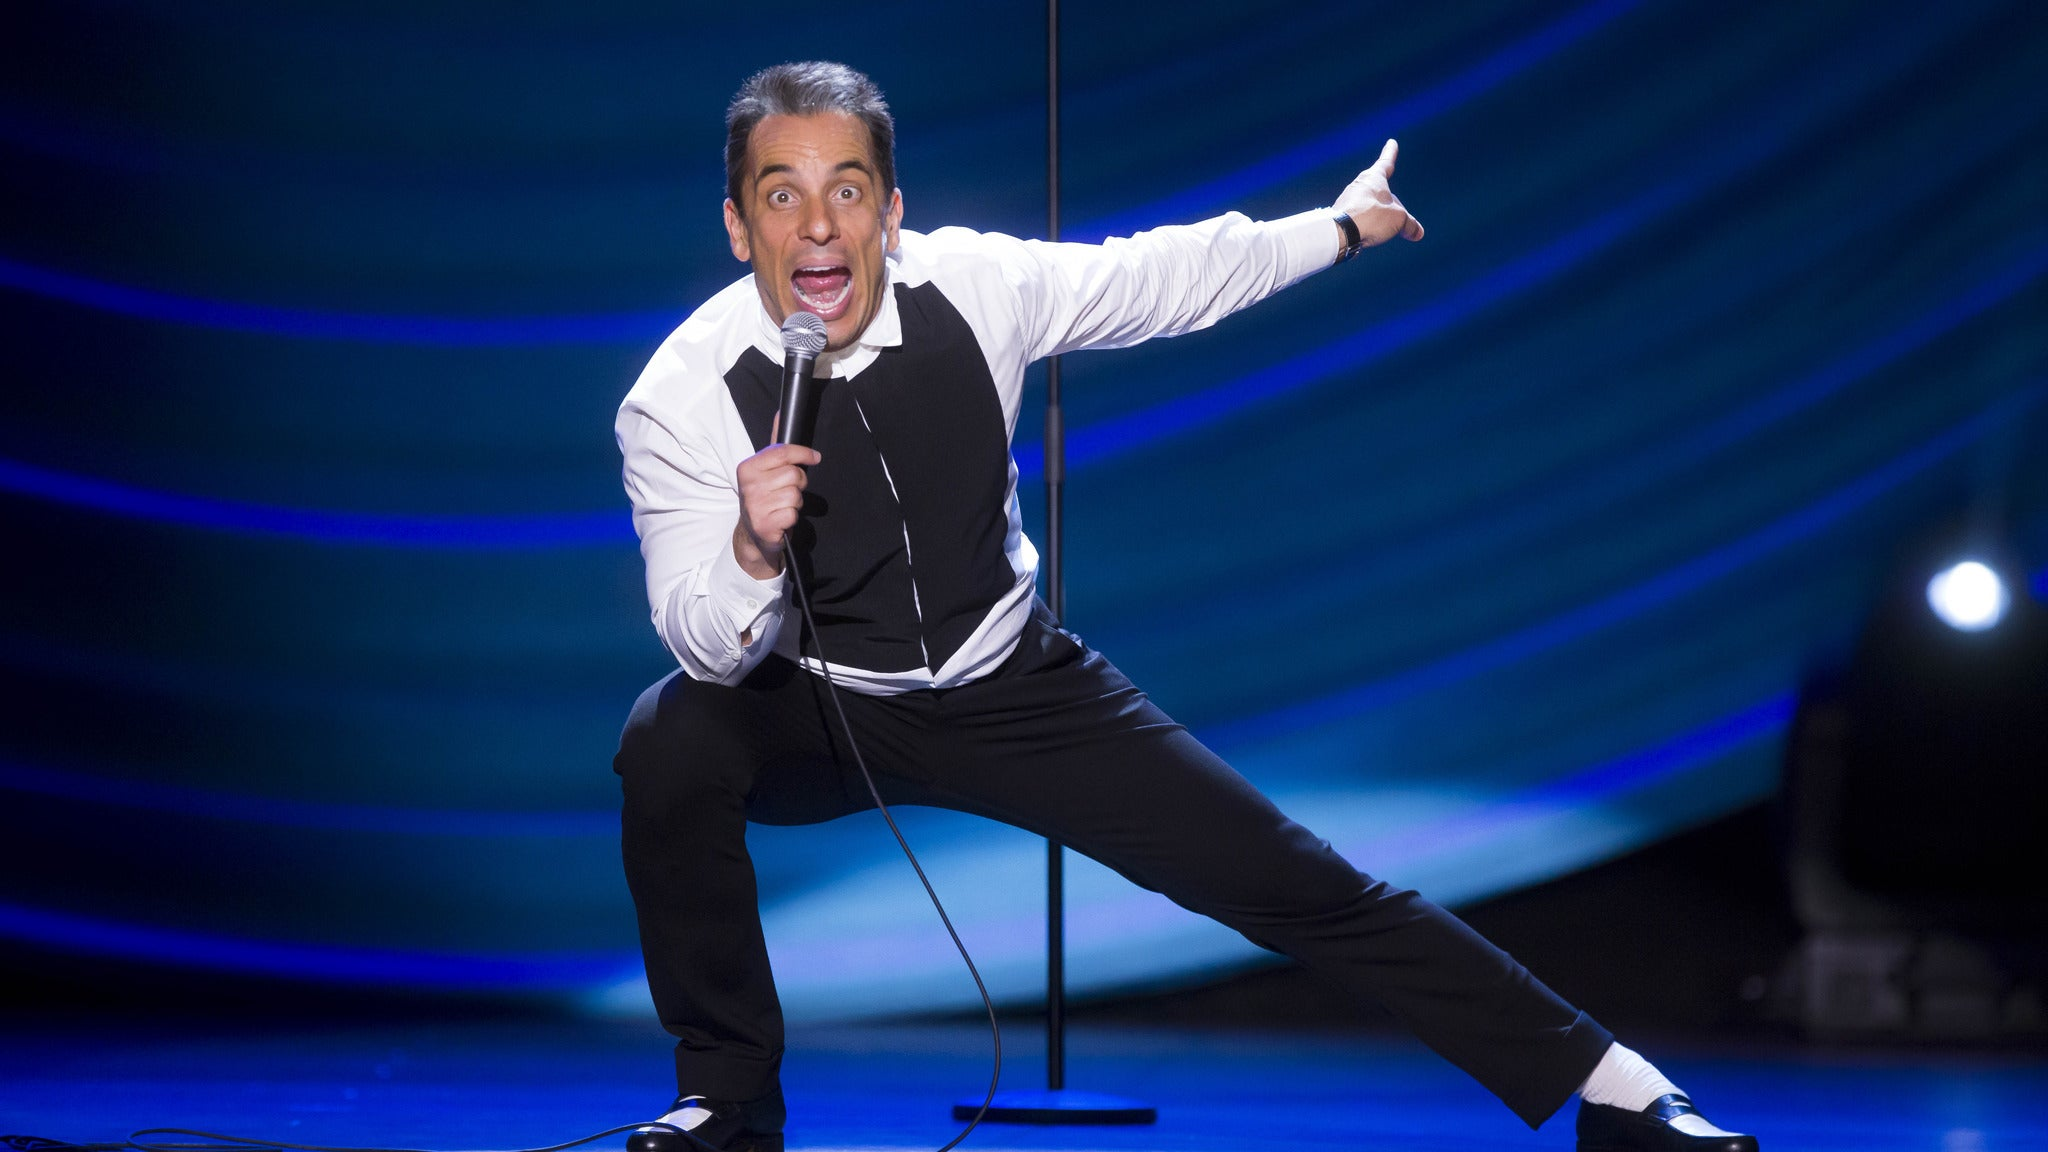 Sebastian Maniscalco at Thunder Valley Casino Resort